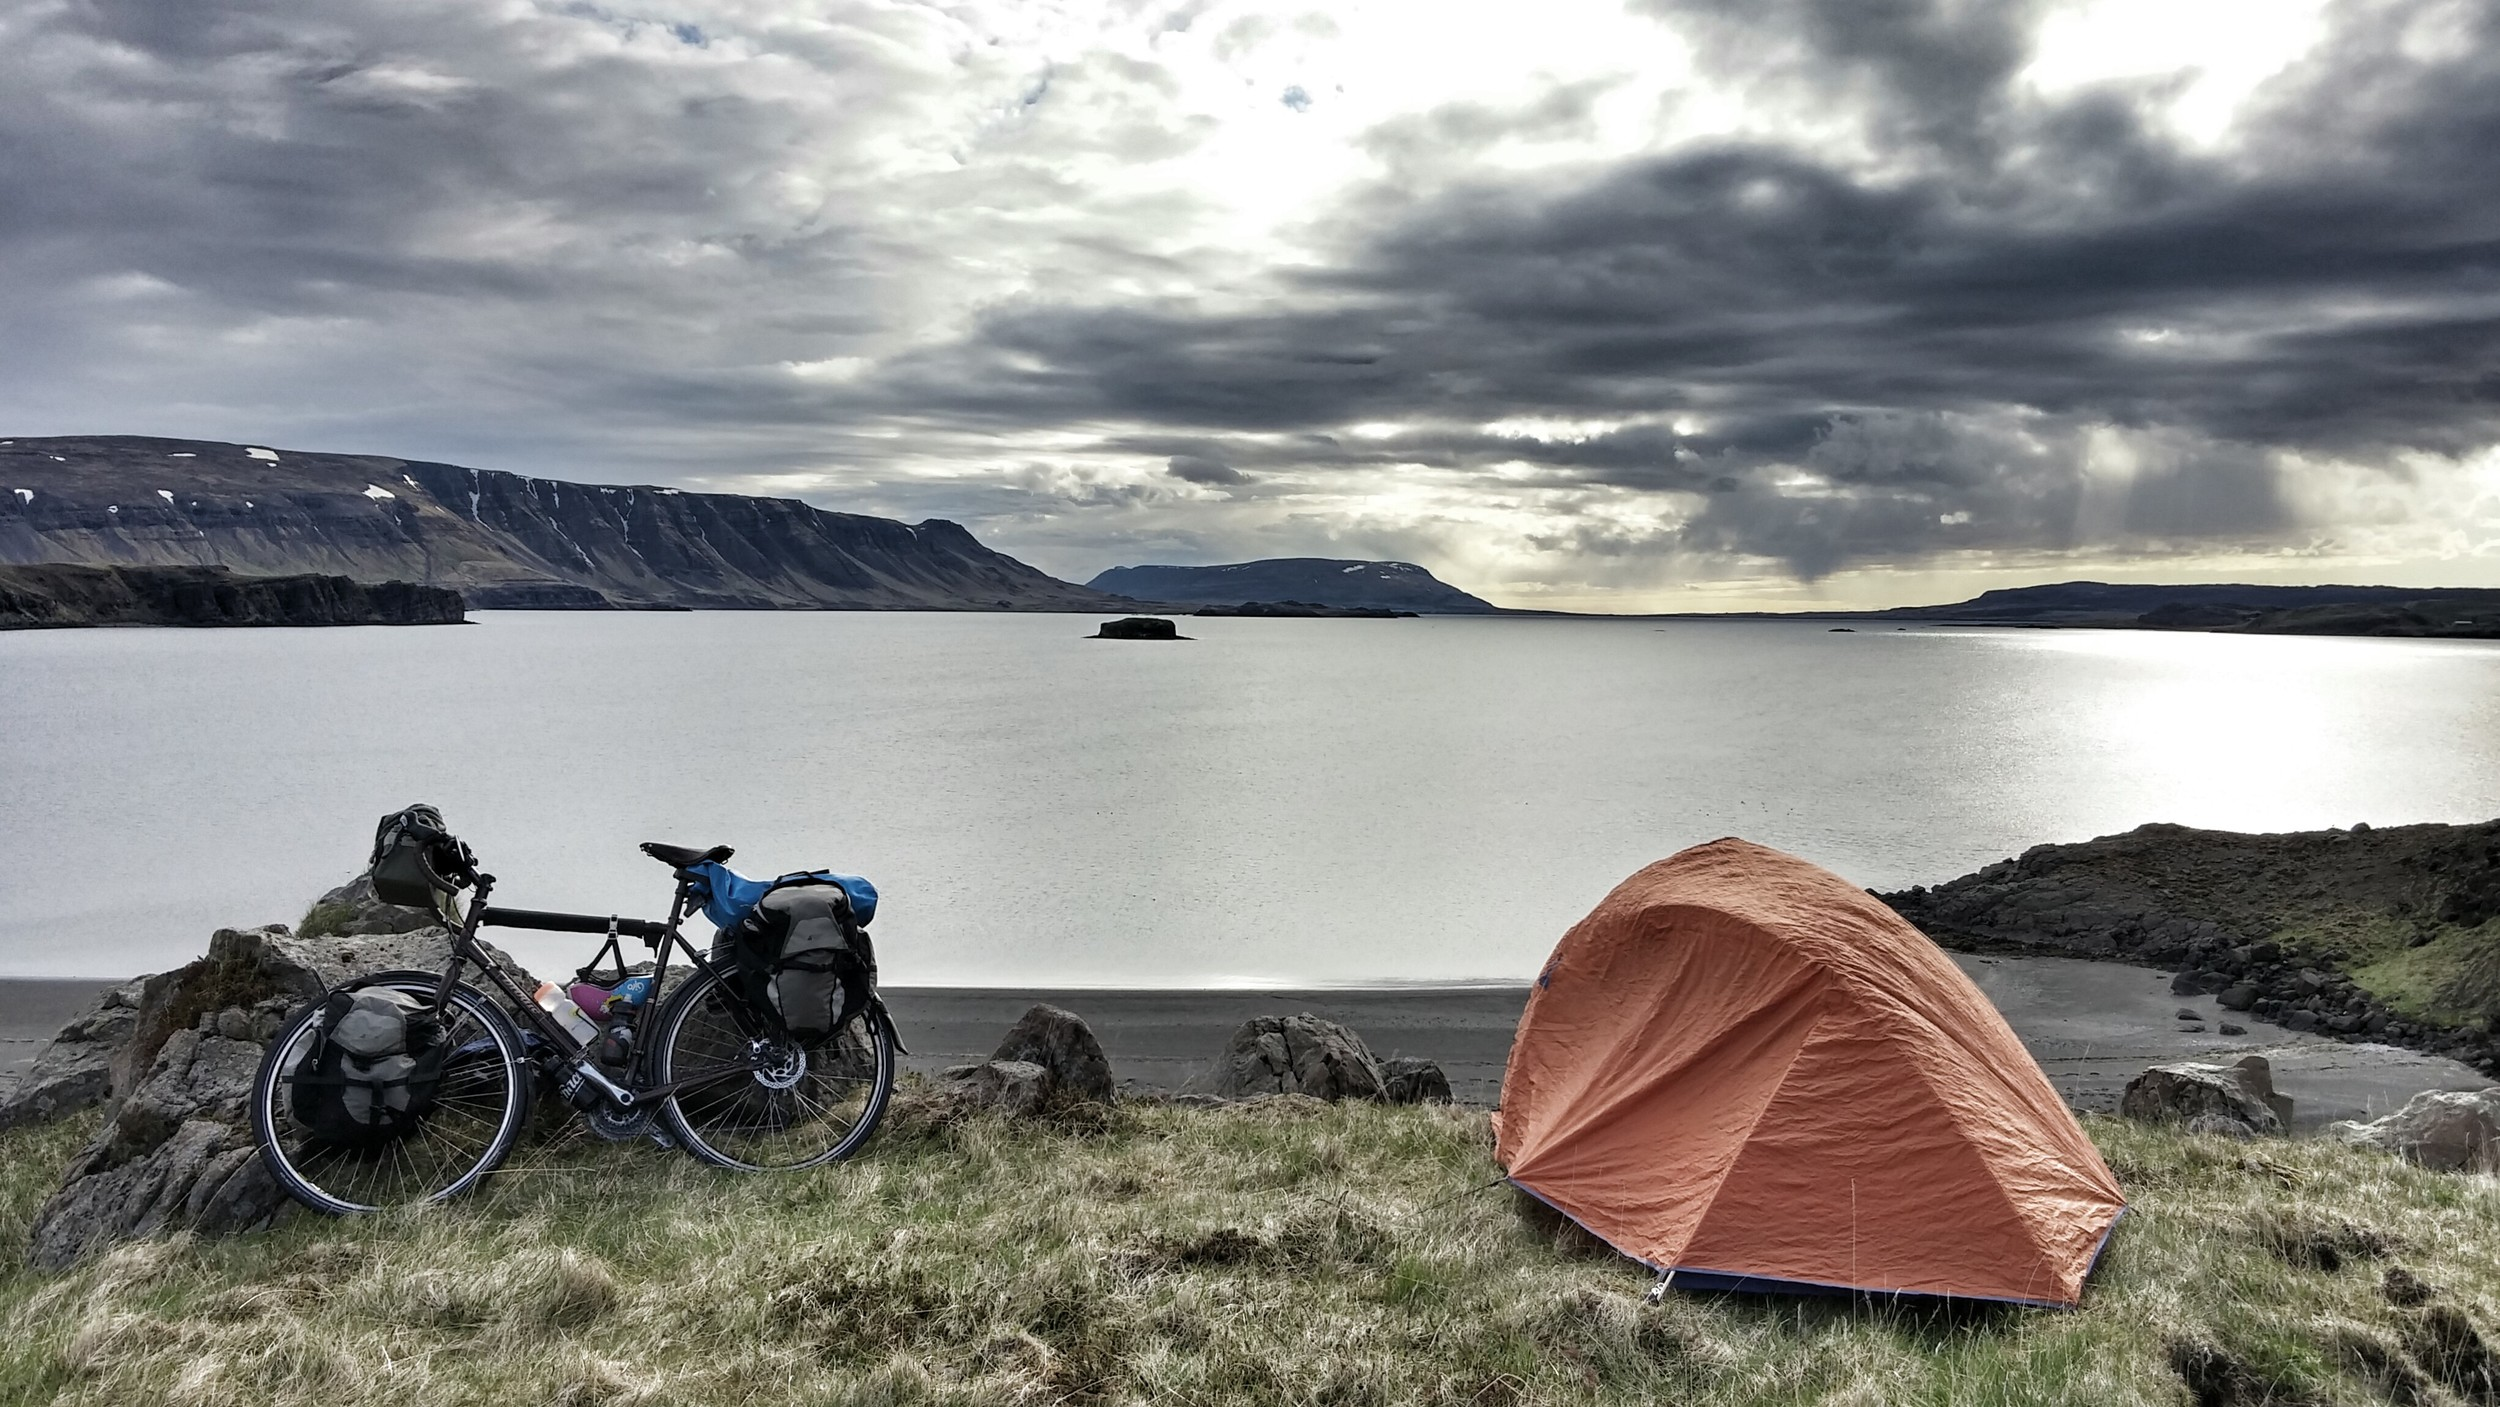 I packed my stuff until 4am in Vancouver, slept two hours, woke up, flew to Iceland, landed, built my bike, met my cousin, cycled 75km, woke up here then cycled all day again. We repeated this process for an enjoyable 16 days until cycling back to where we started in Reykjavik. 1,750 km in 16 days.